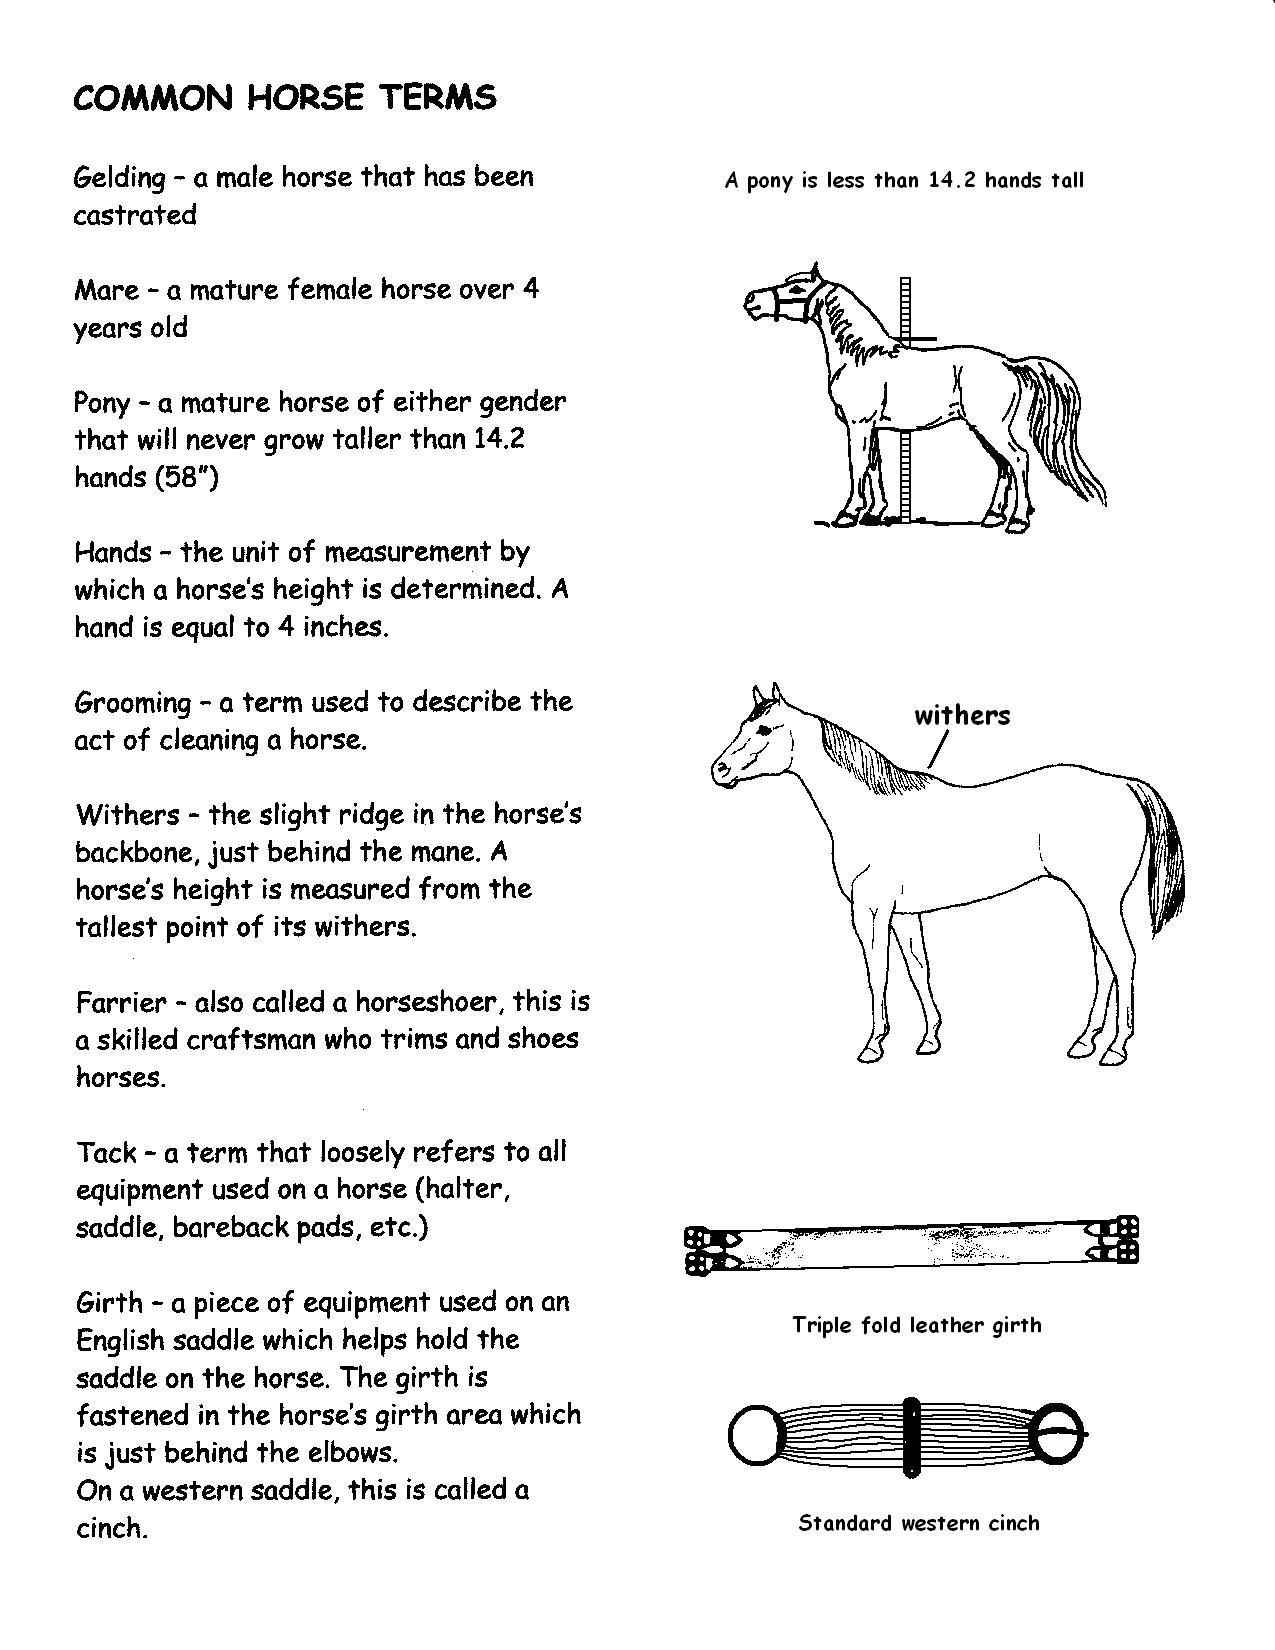 Common Horse Terms Handout With Images